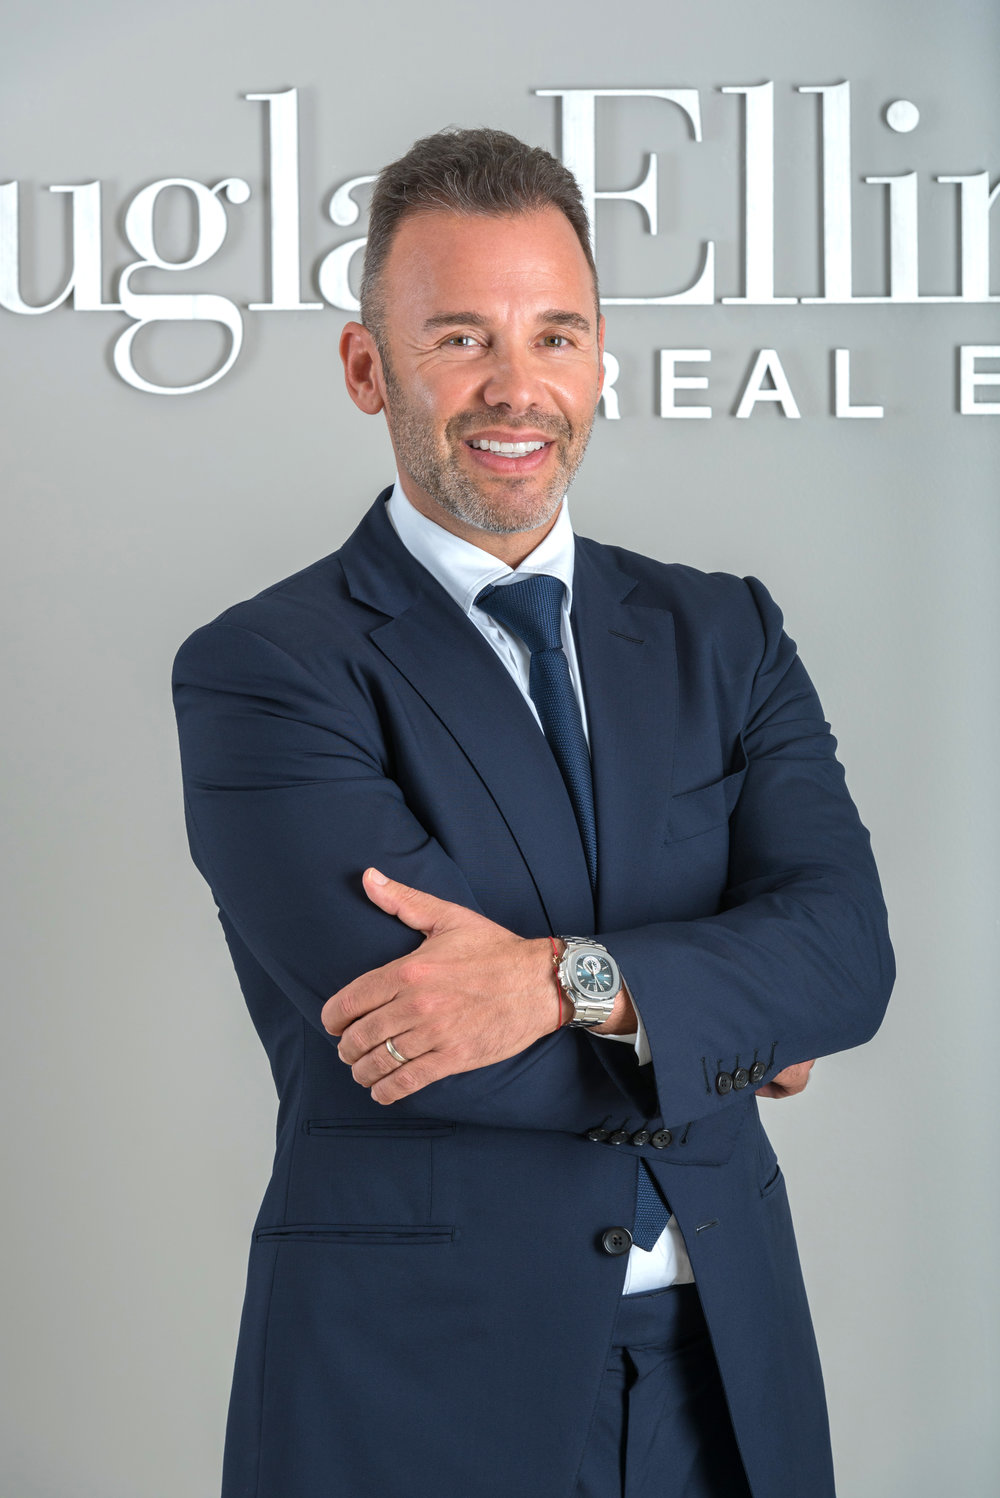 PROFILE Exclusive: How Douglas Elliman Conquered South Florida's Luxury Real Estate Market with Jay Parker, CEO of Douglas Elliman's Florida Brokerage